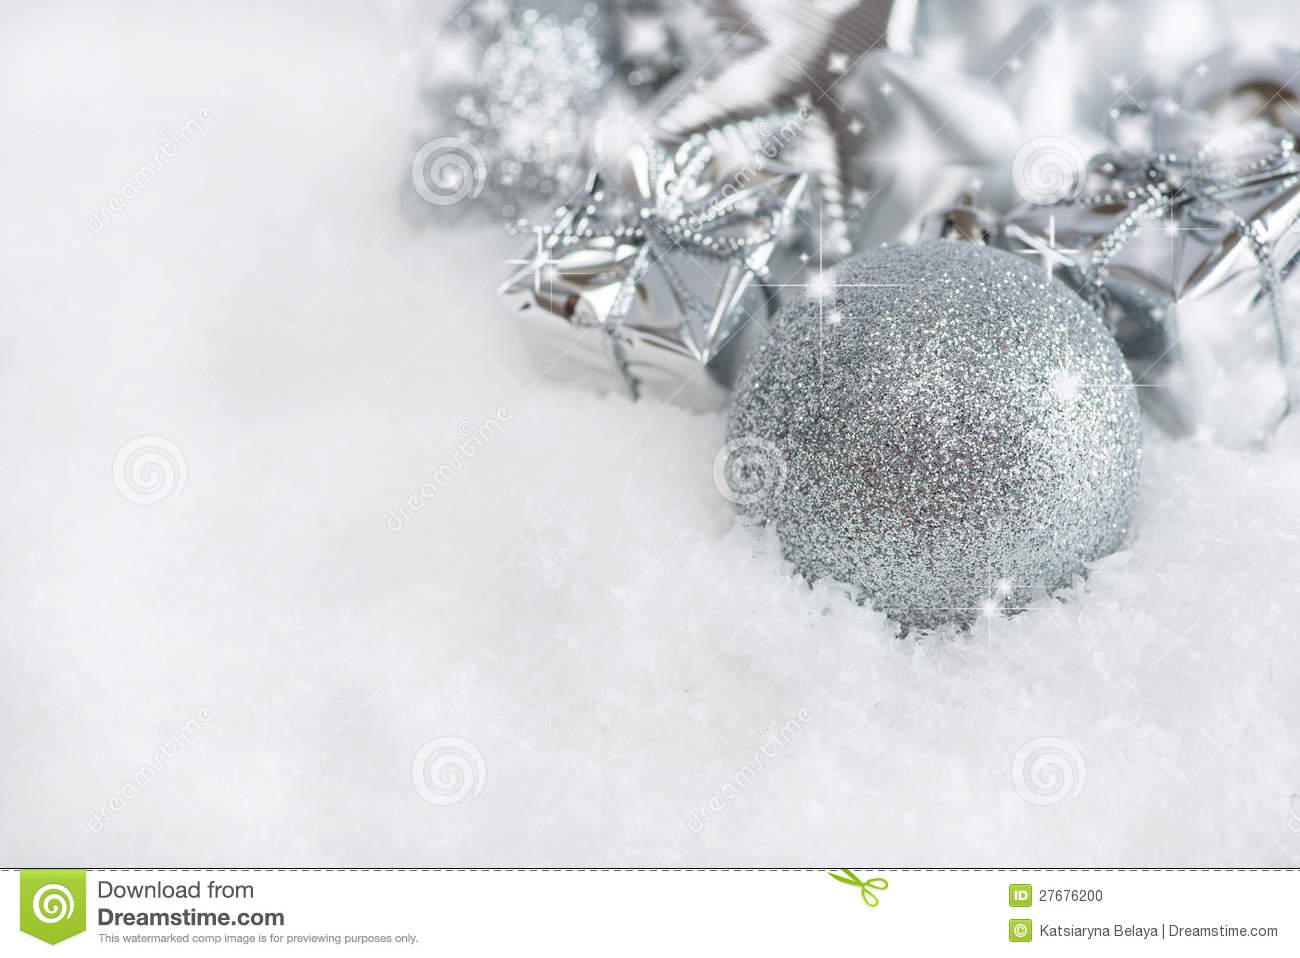 Silver Christmas Photos, Images, & Pictures - Dreamstime ID:19736